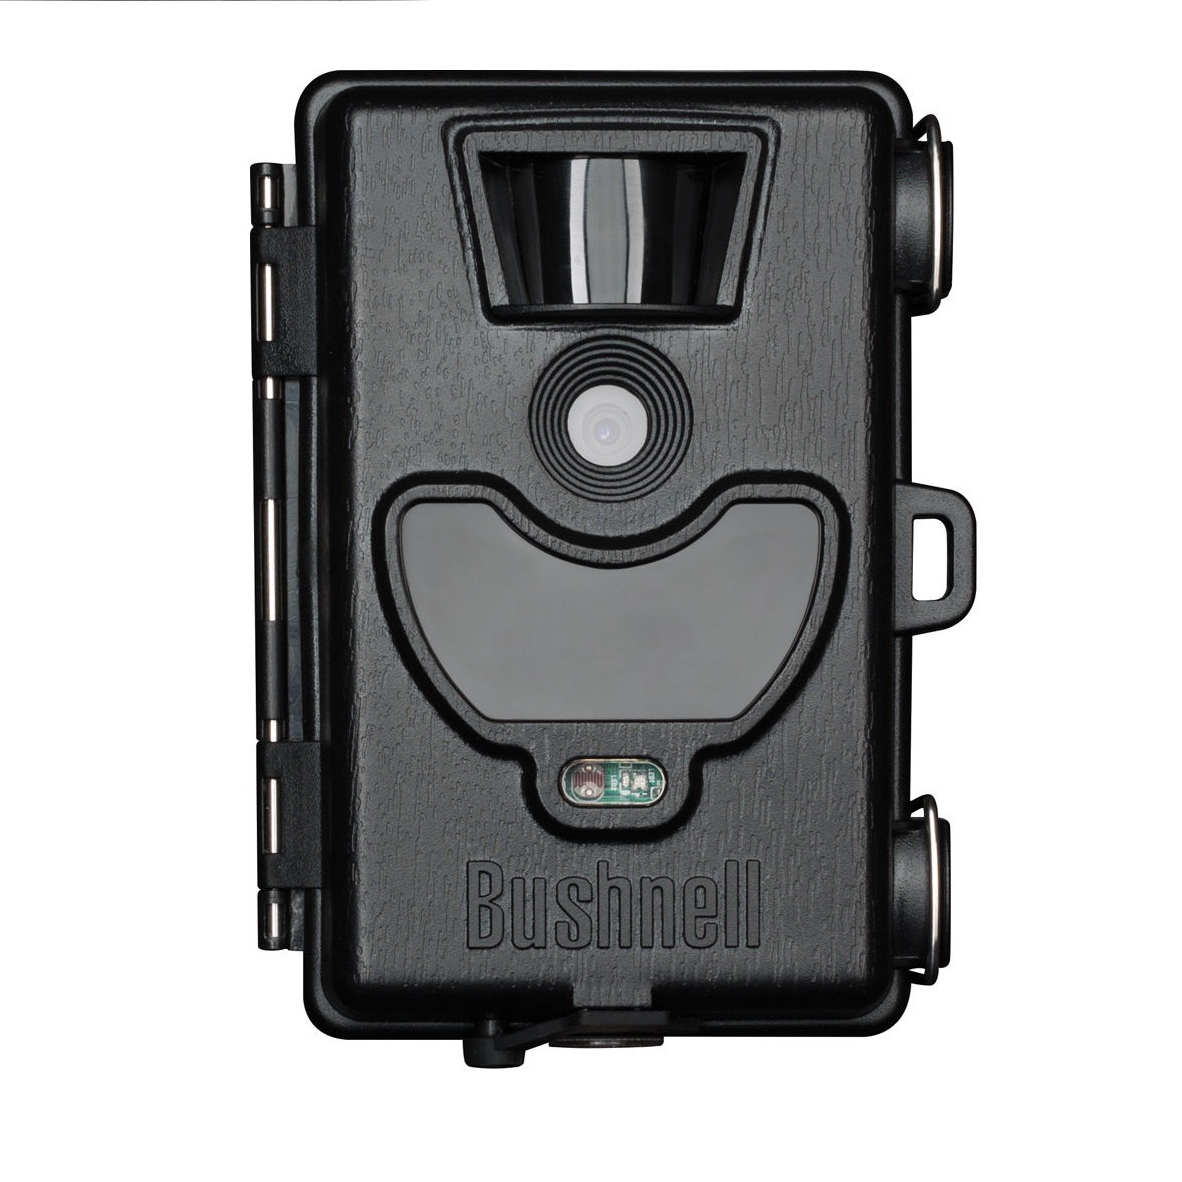 Bushnell Surveillance Camera Black LED WiFi